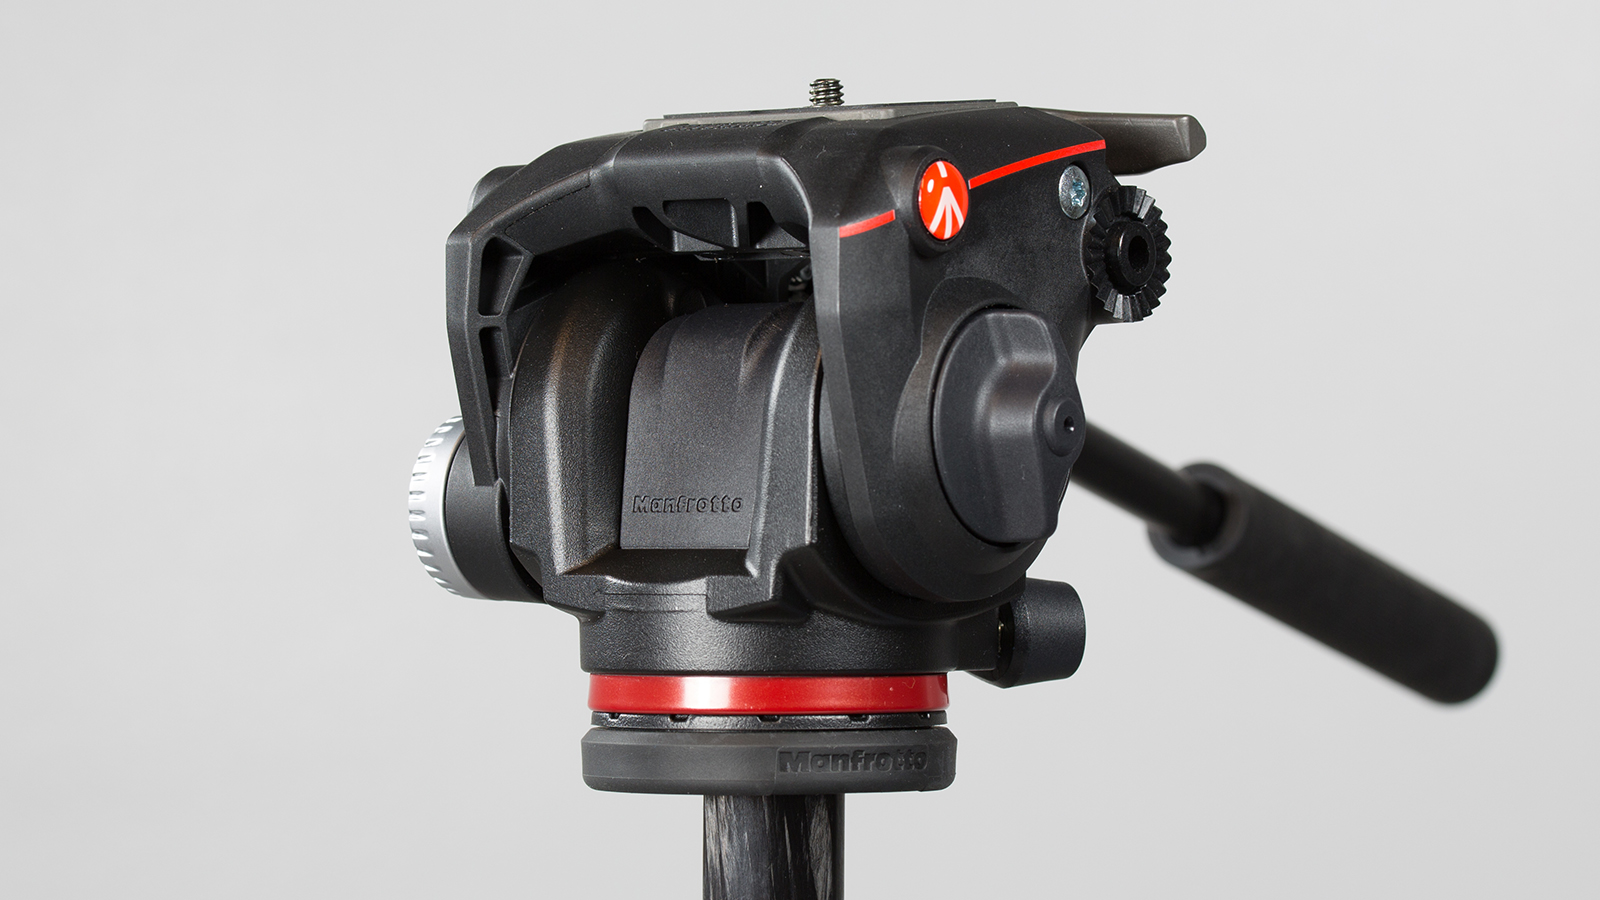 Manfrotto-MHXPRO-2W-DT-011-statiivil